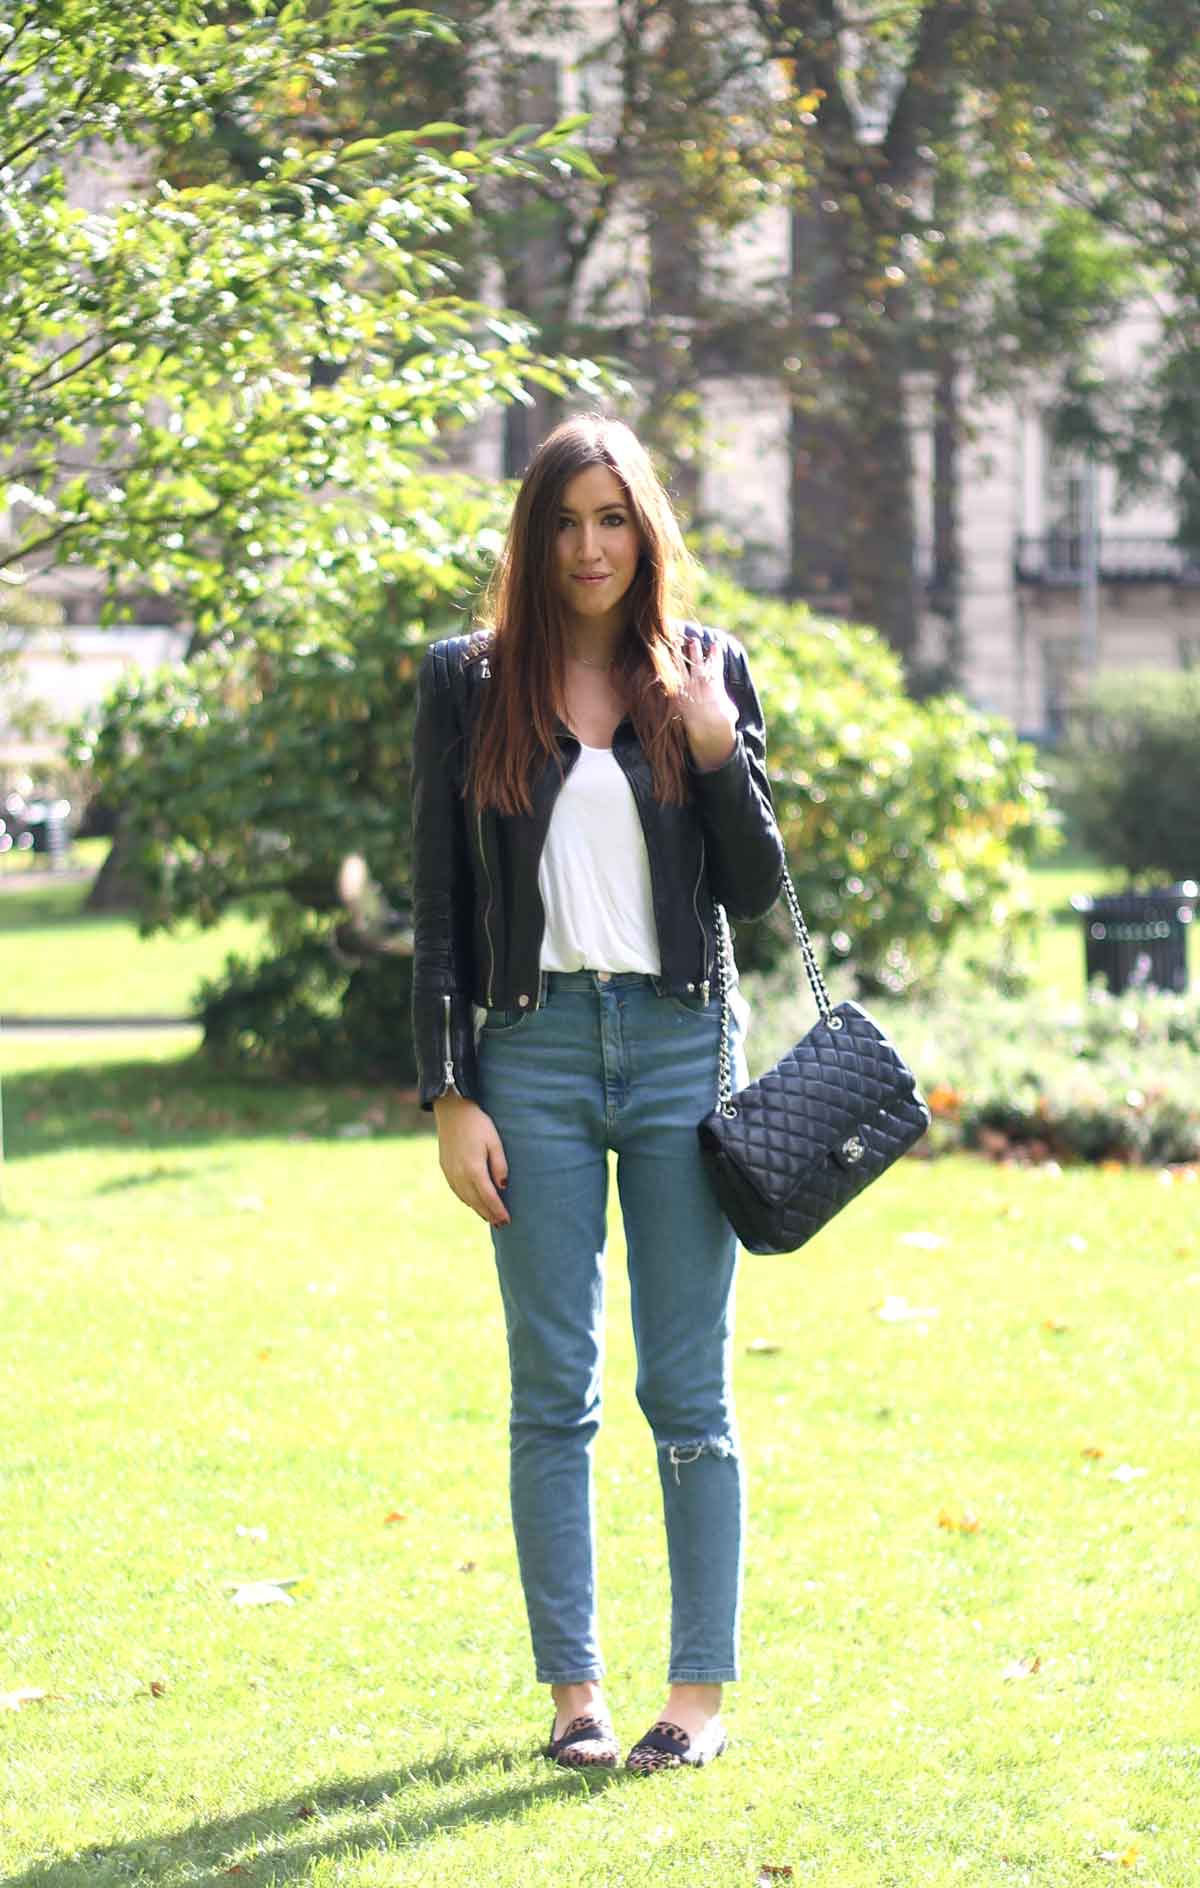 Blogueuse-mode-elygypset-londres